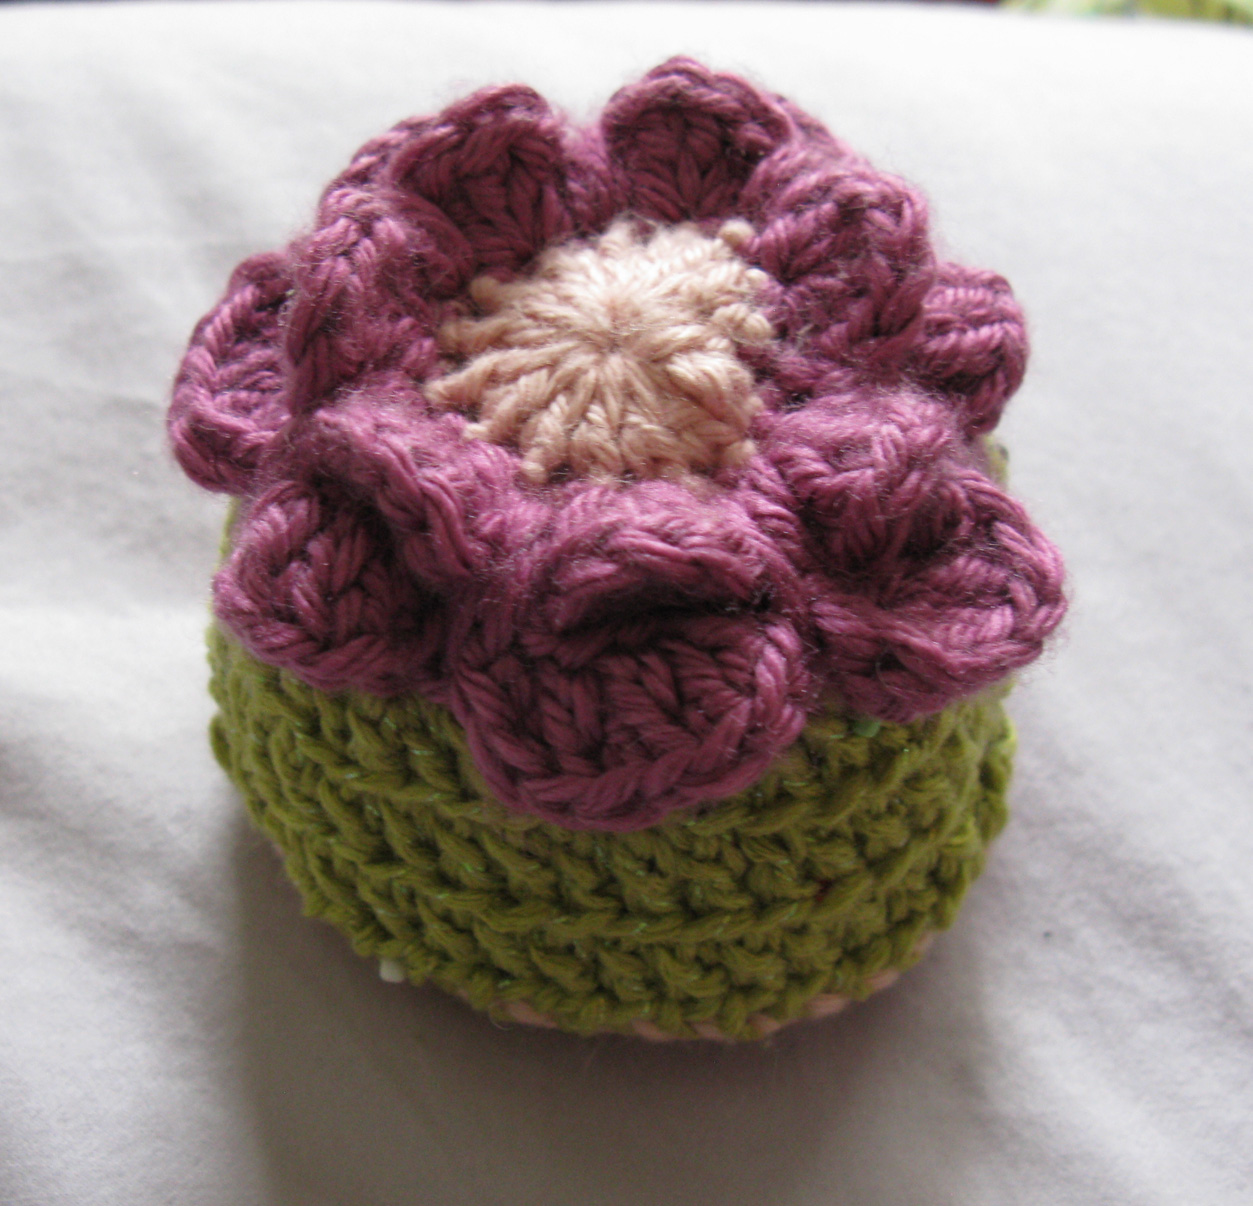 Crochet patterns: Pincushions - by Thom W. Conroy - Helium